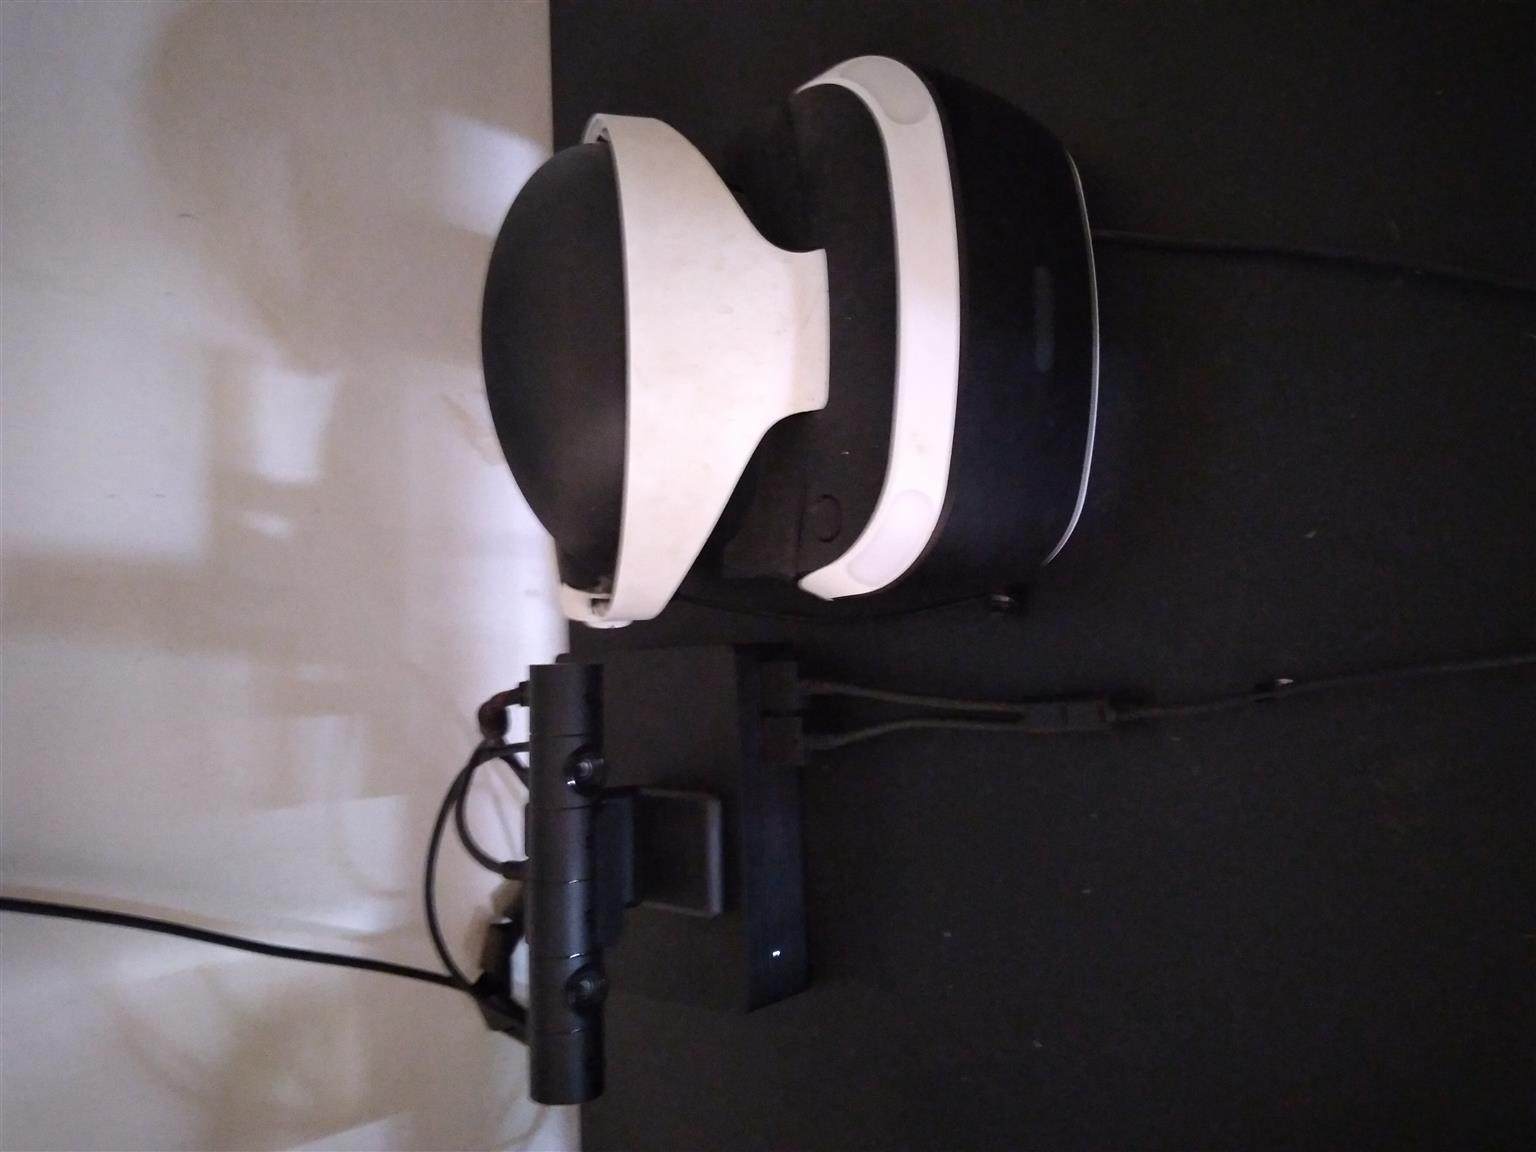 Ps4 vr headset like new